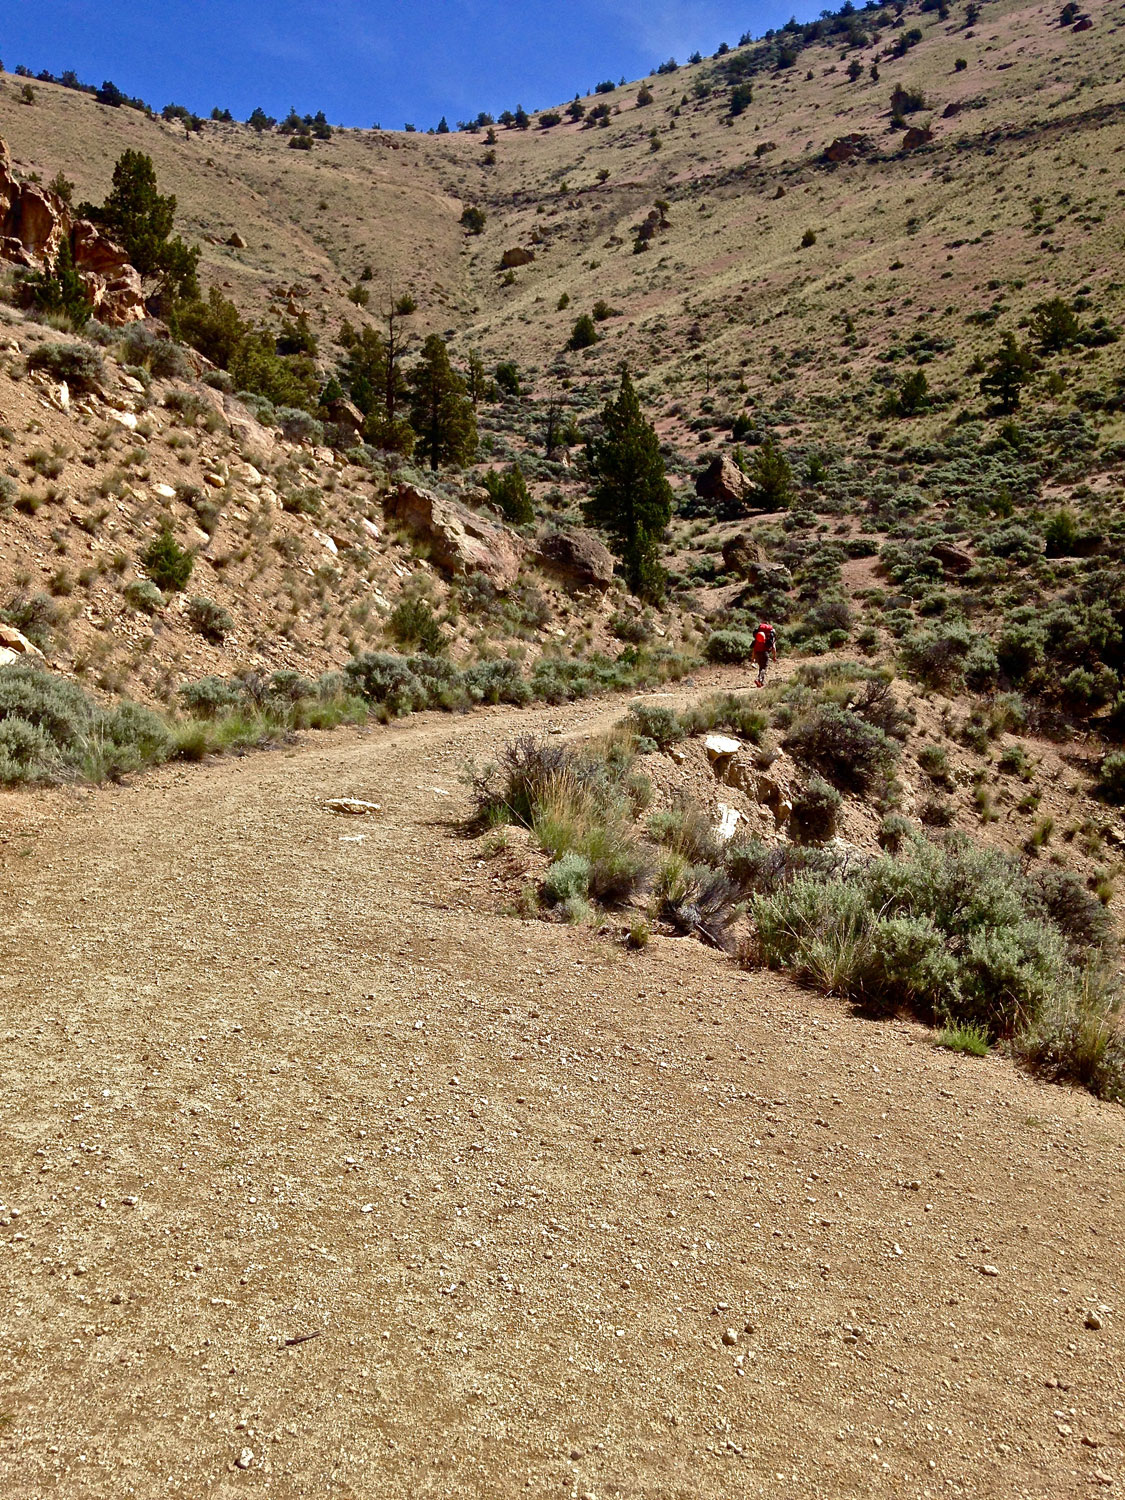 Outside of Smith Rock State Park the Burma Road Trail becomes an irrigation canal access road.